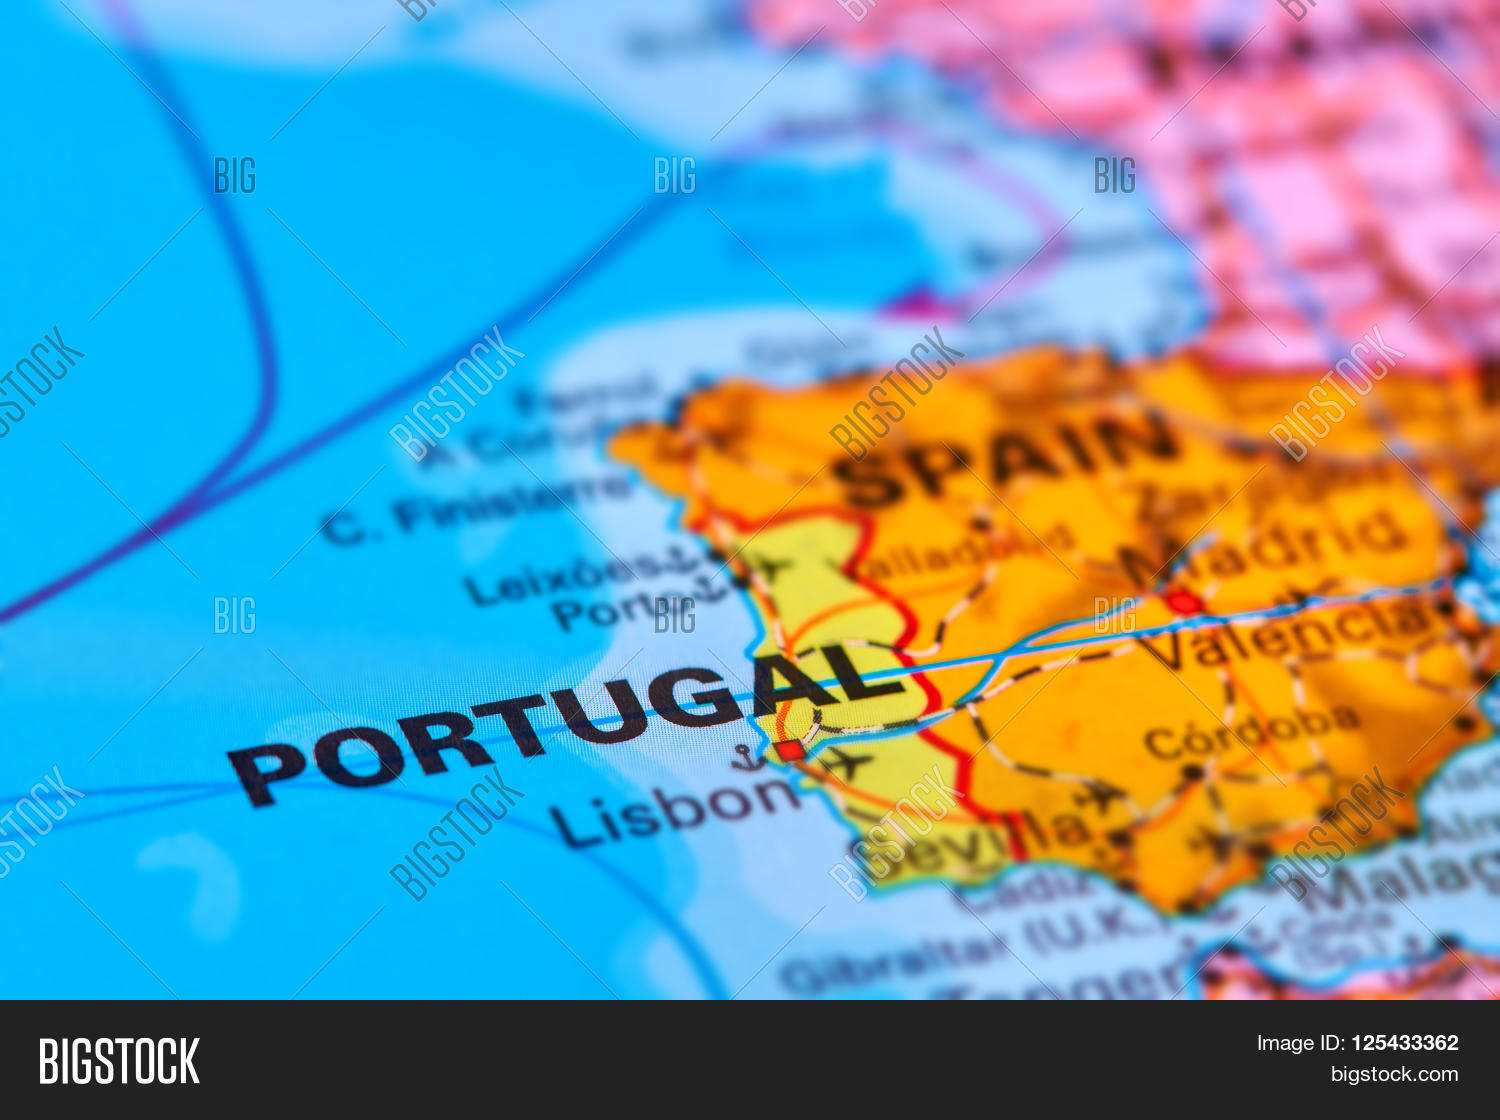 Portugal On Map Image & Photo (Free Trial) | Bigstock